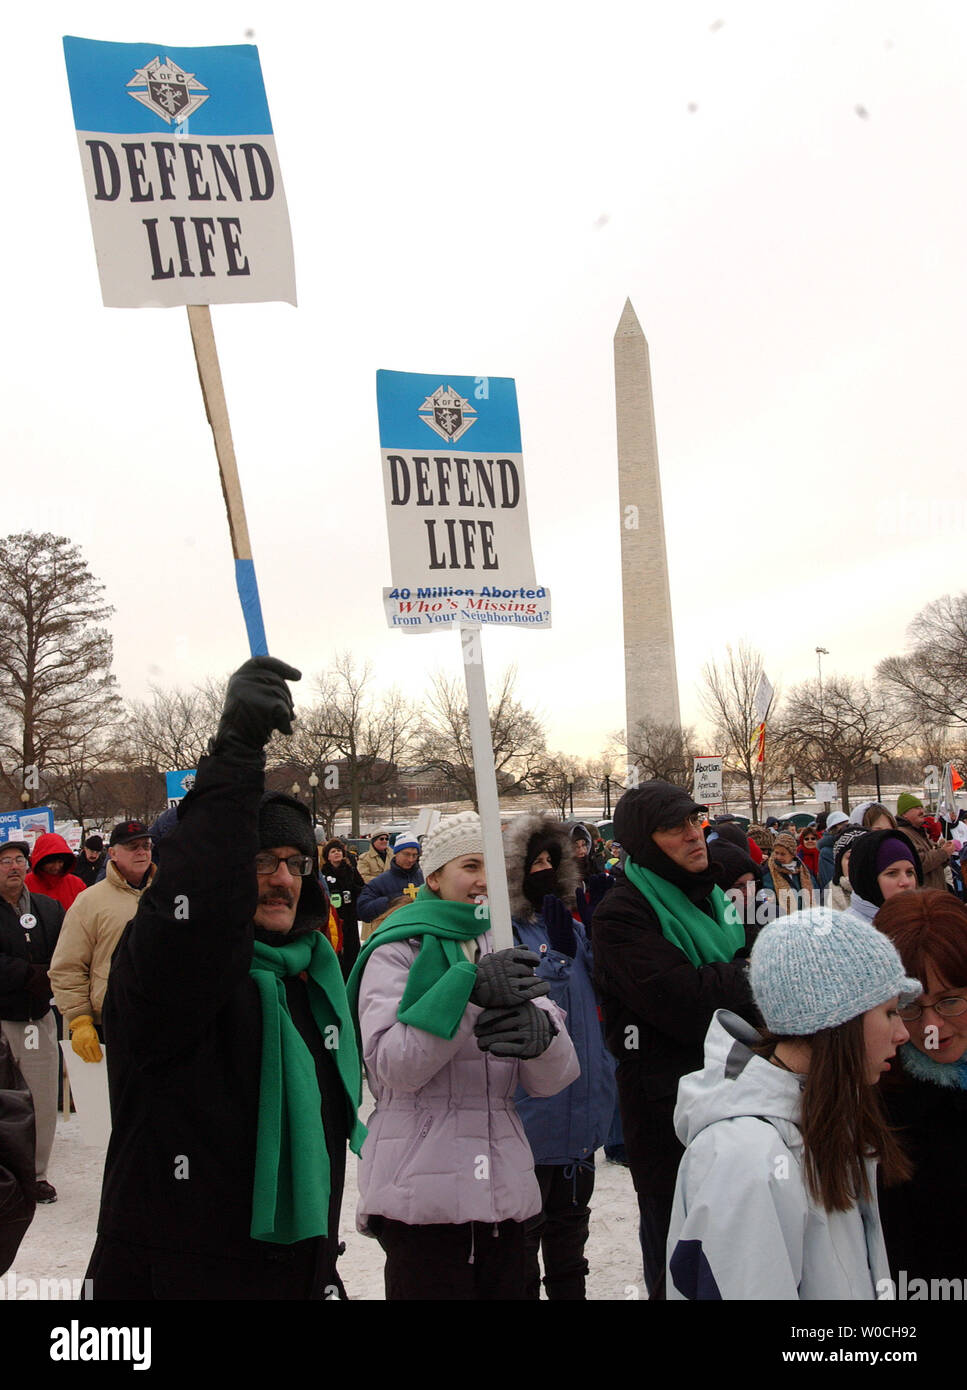 More than 100,000 anti-abortion demonstrators gather on the Eillipse, near the White House in Washington, on Jan. 24, 2005. This is the 32nd annual march held in conjunction with the Jan. 22 anniversary of the Supreme Court decision Roe vs. Wade which legalized abortions across the U.S.   (UPI Photo/Roger L. Wollenberg) Stock Photo